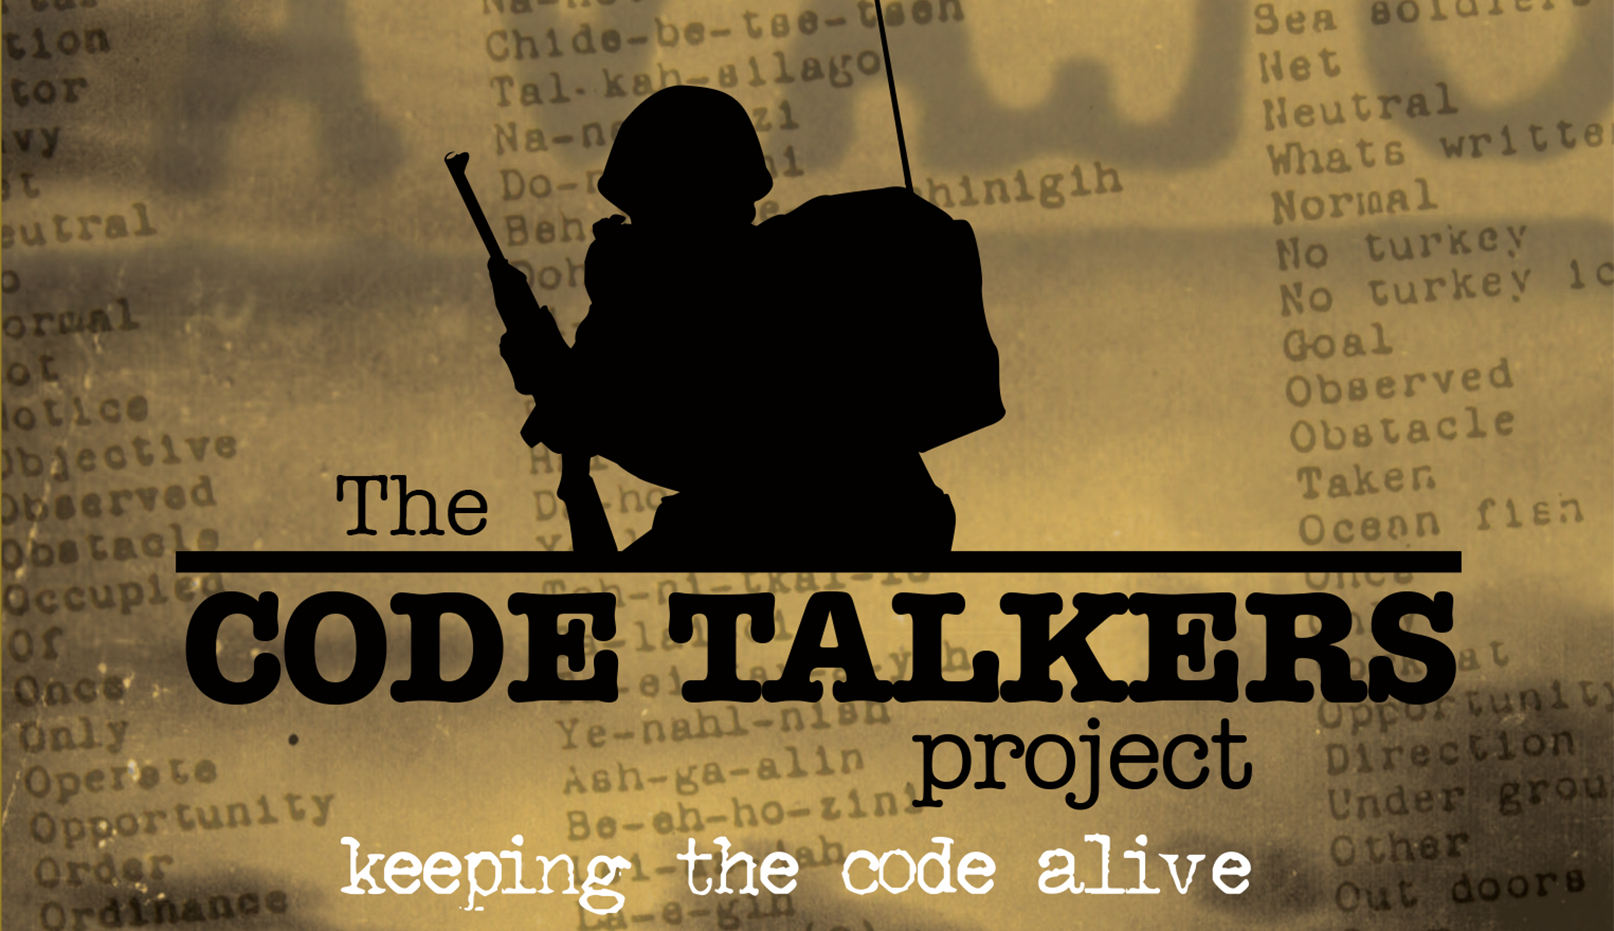 The Codetalkers Project